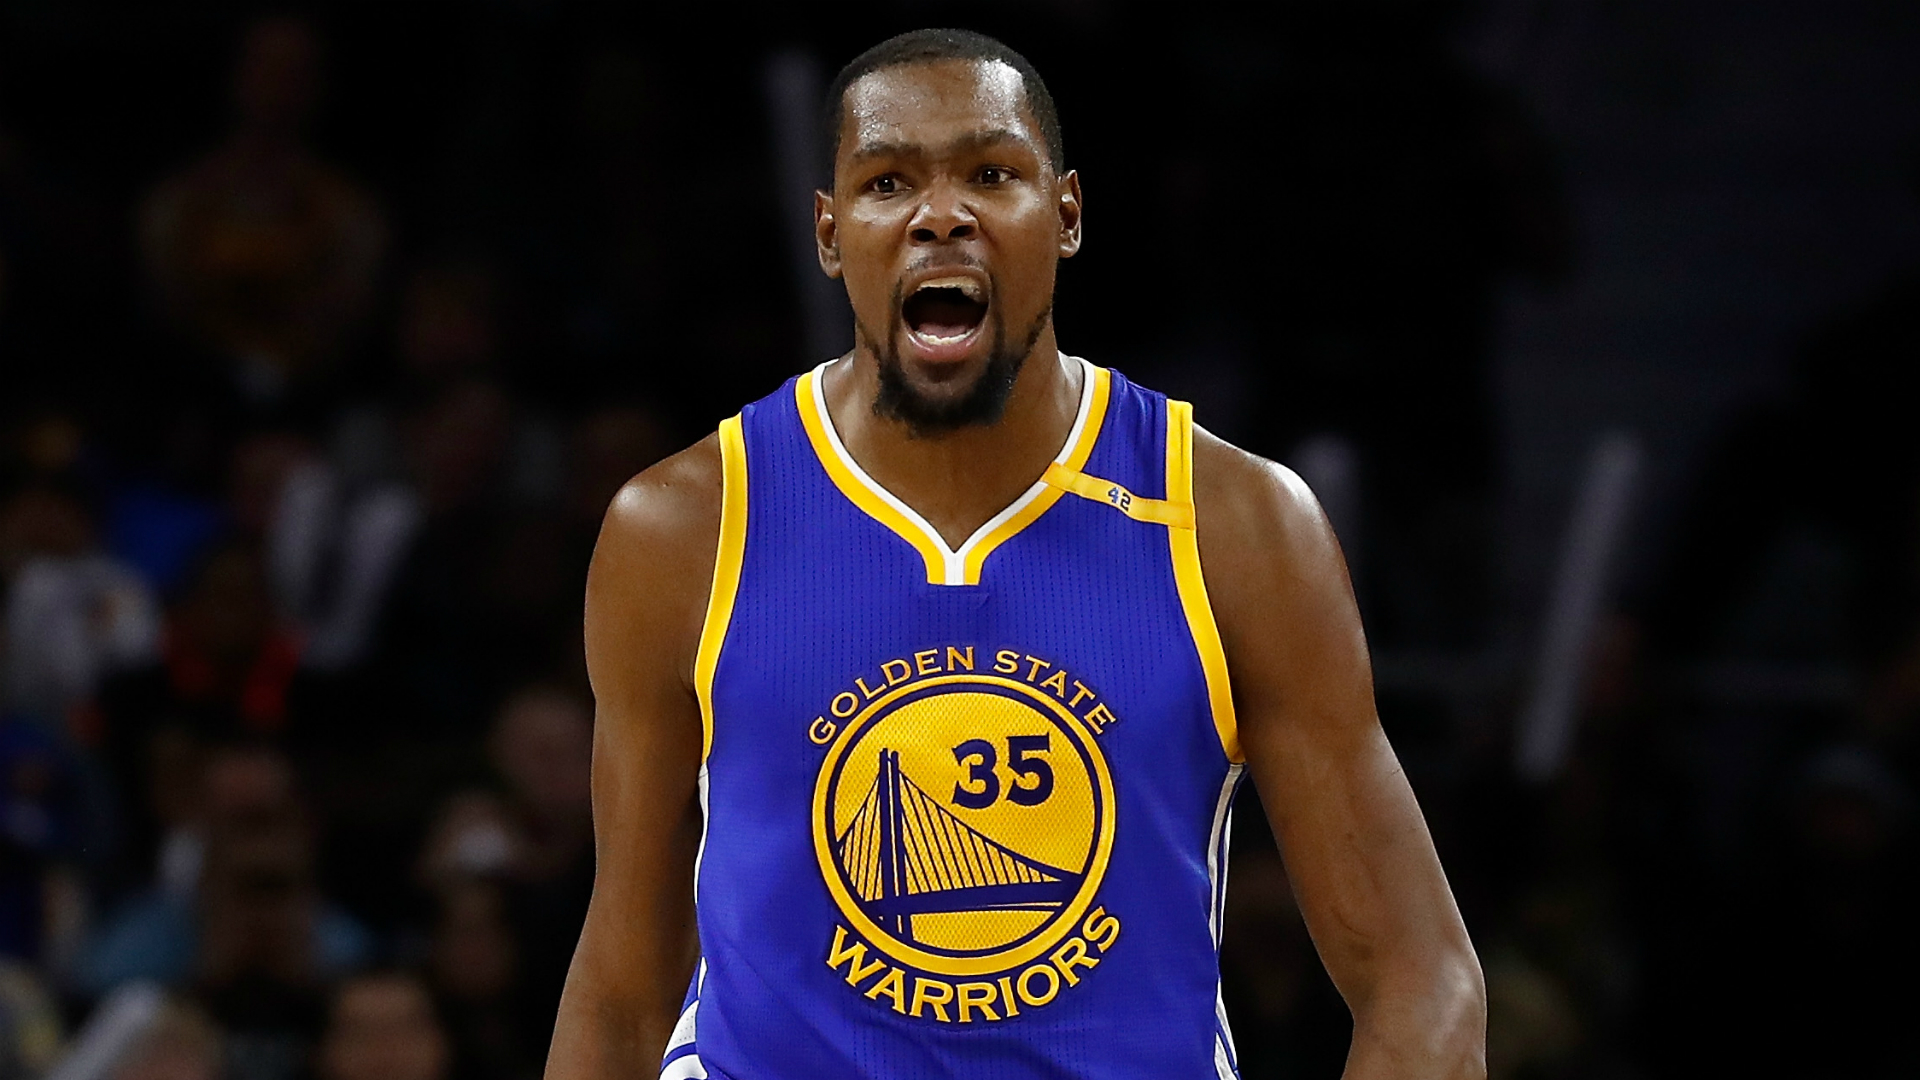 Warriors hopeful Kevin Durant (knee) returns before end of season